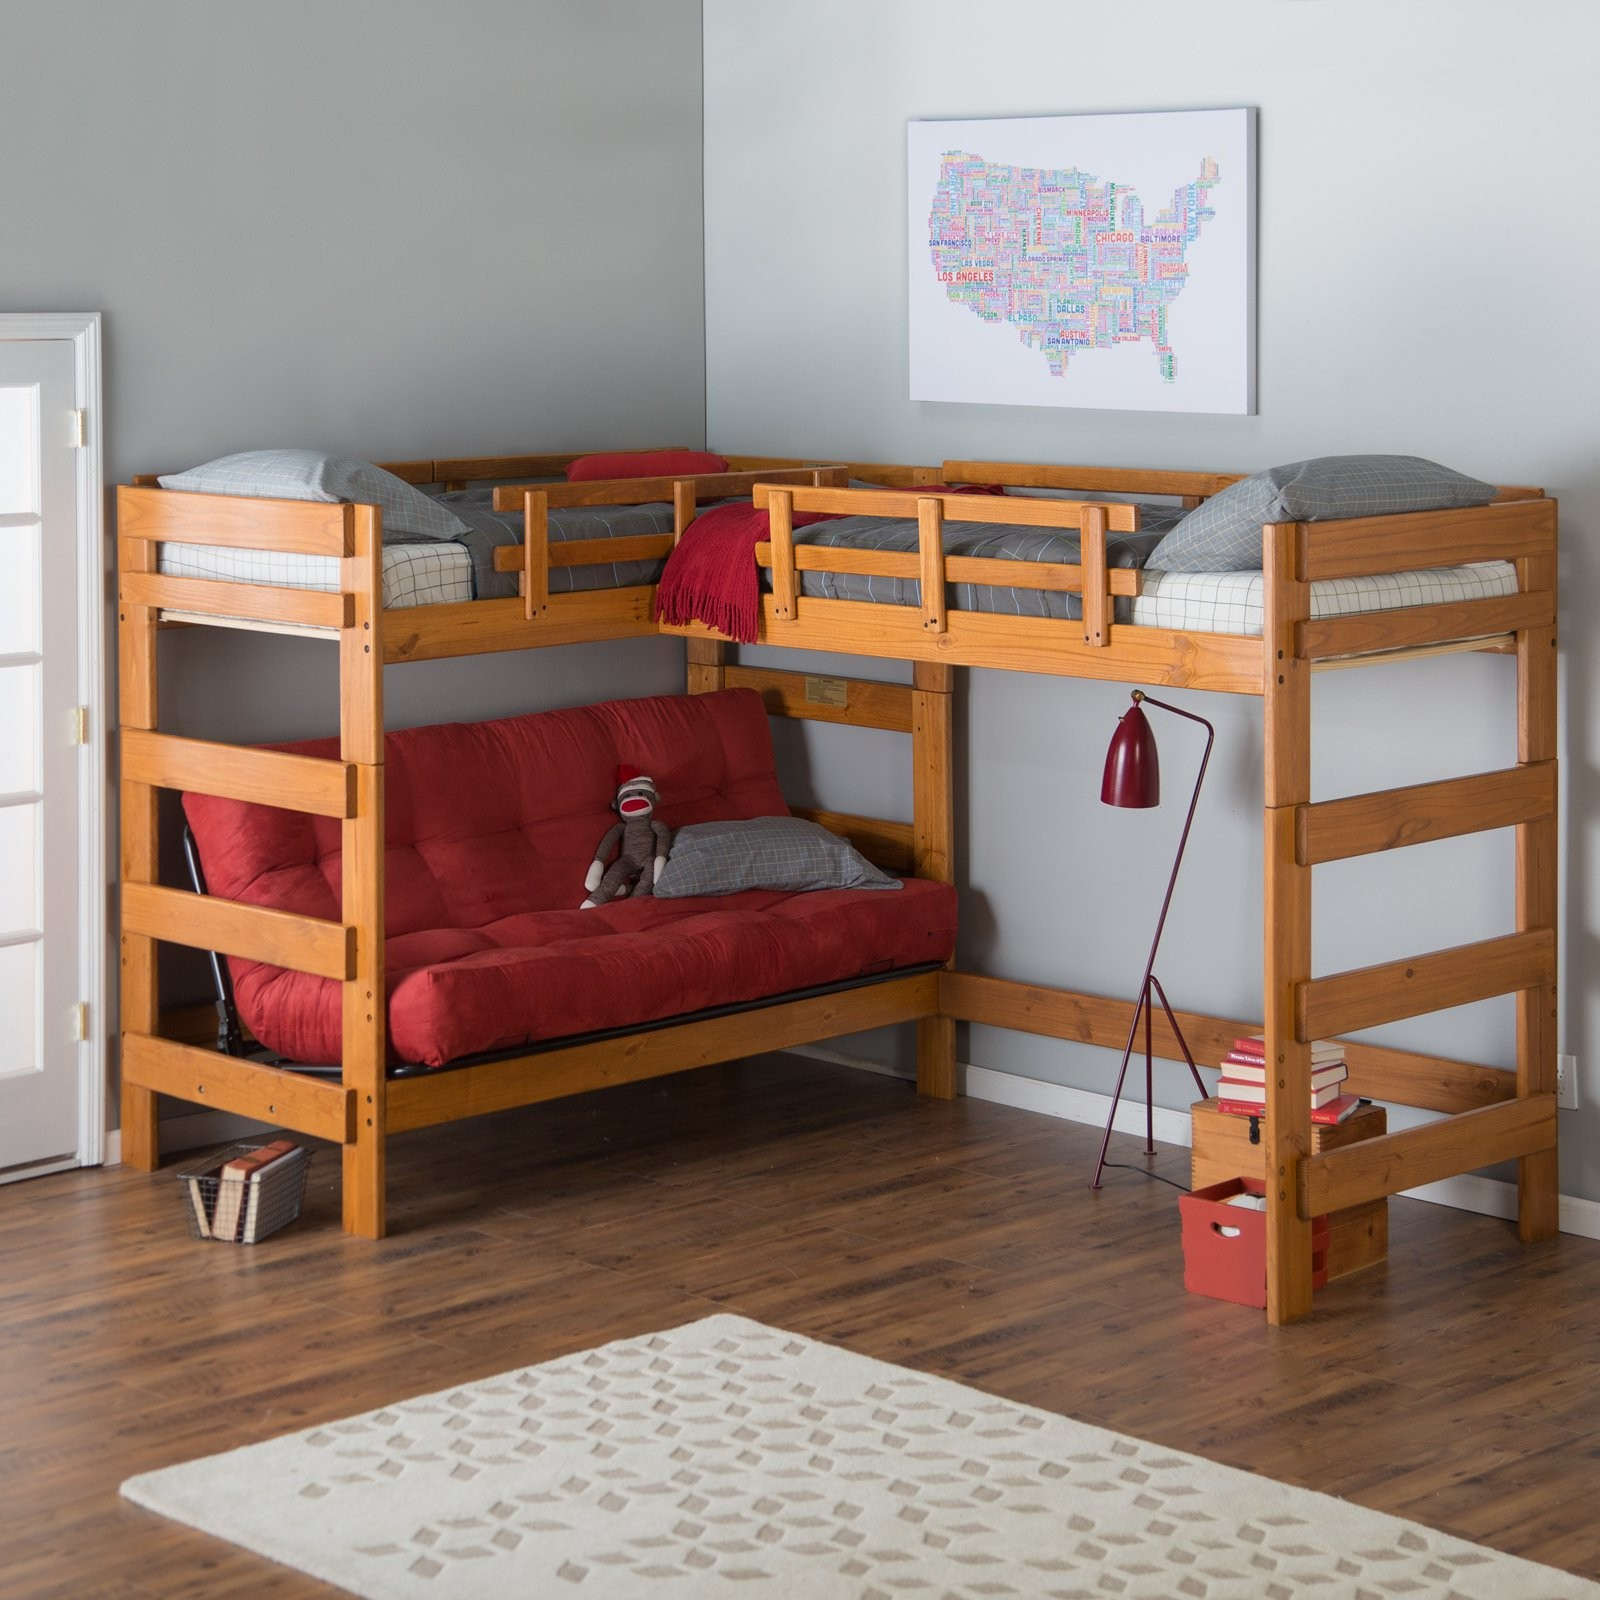 Bunk beds with slide and rope - Bunk Beds With Slide And Rope 43